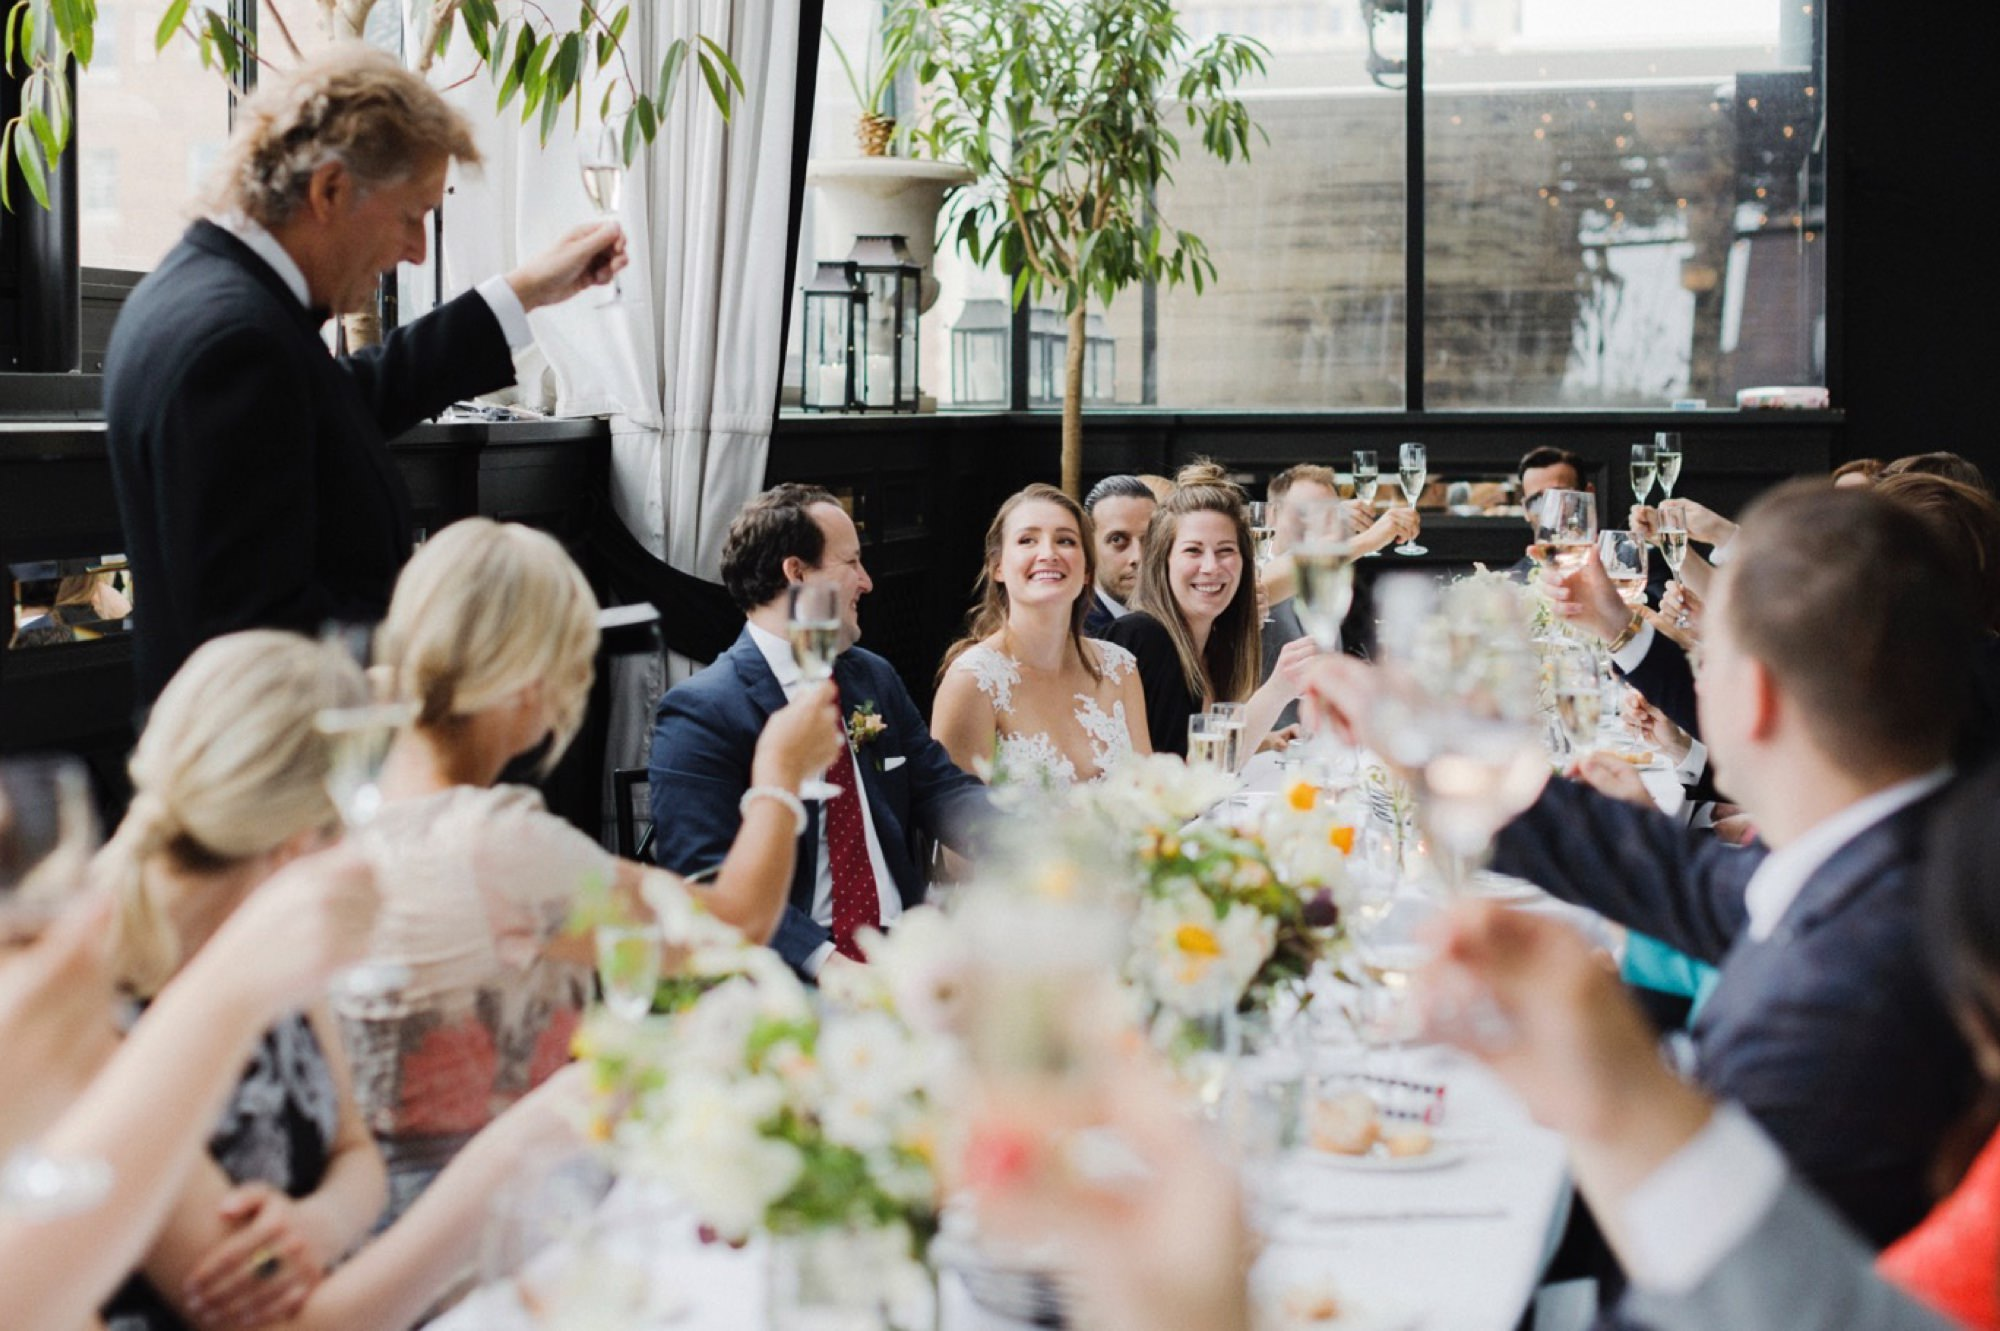 Wedding toasts at Gramercy Rooftop Wedding Venue